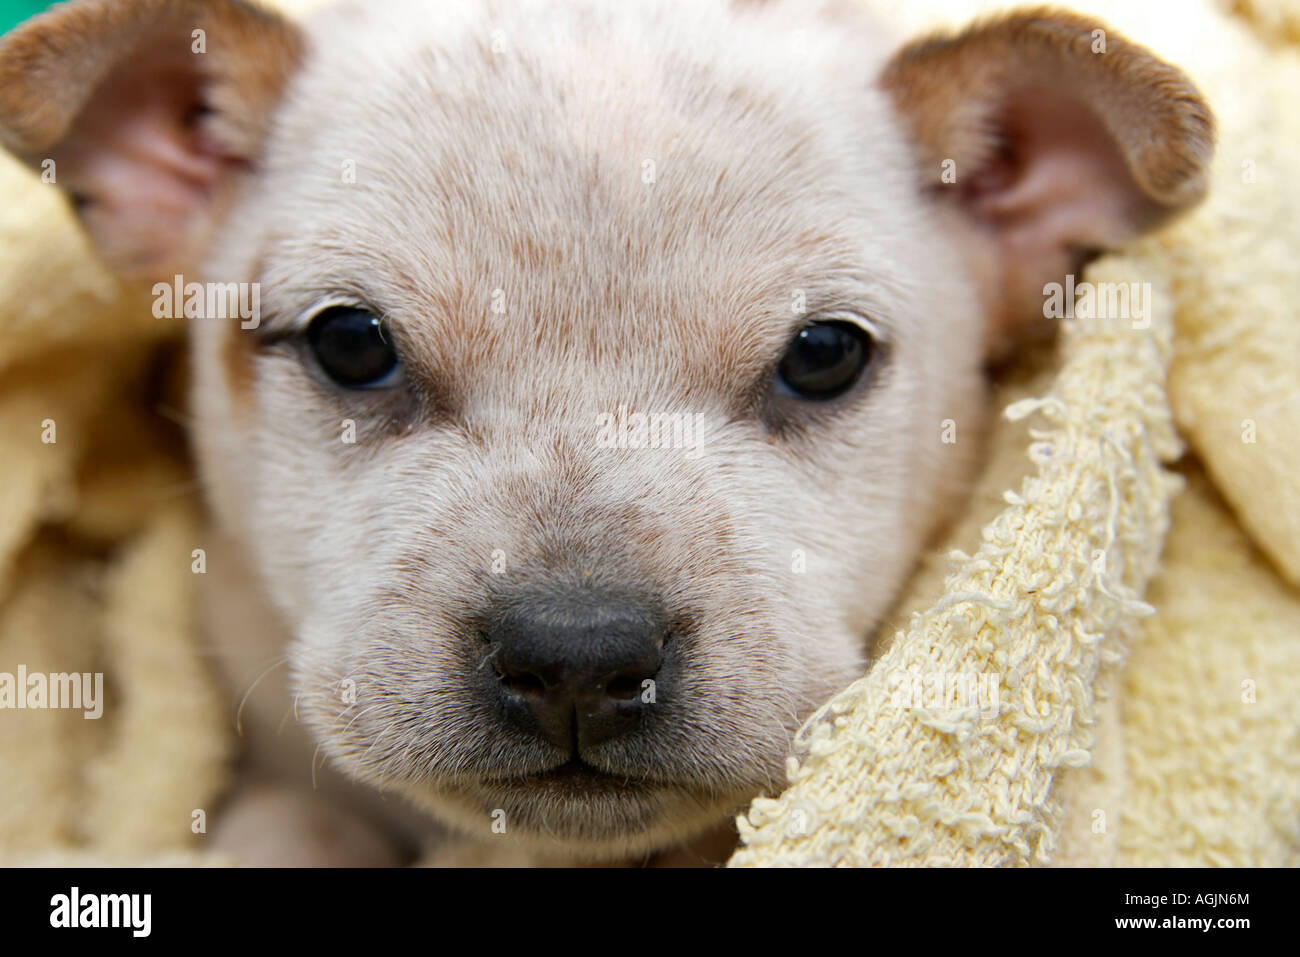 a cute and adorable fox terrier puppy dog wrapped in a blanket - Stock Image